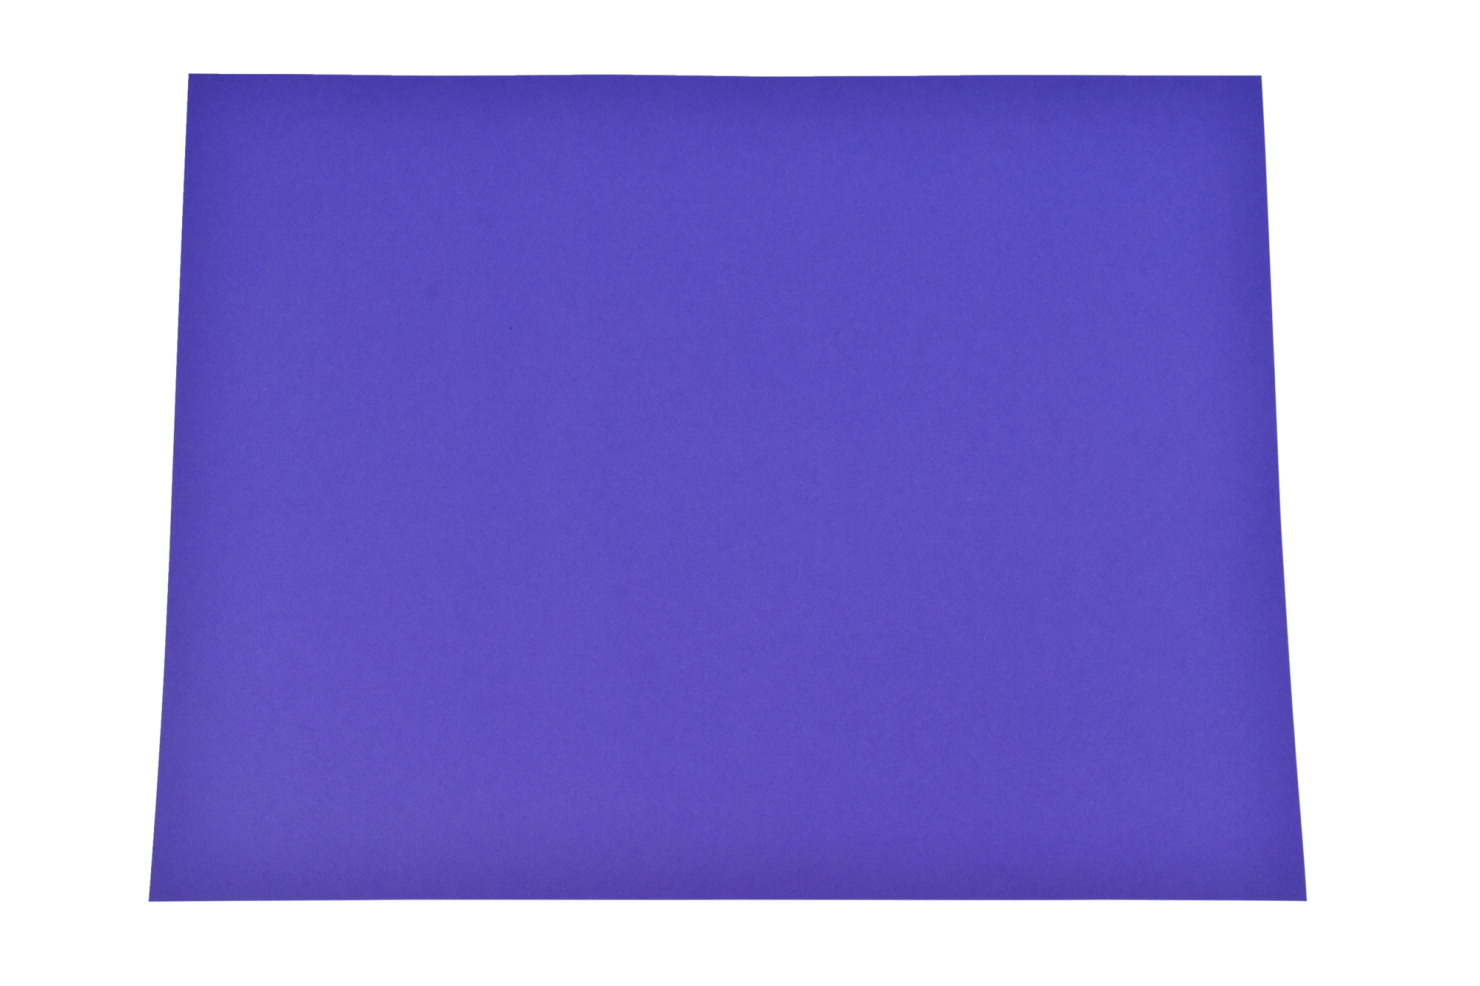 Sax Colored Art Paper, 9 x 12 Inches, Dark Violet, 50 Sheets